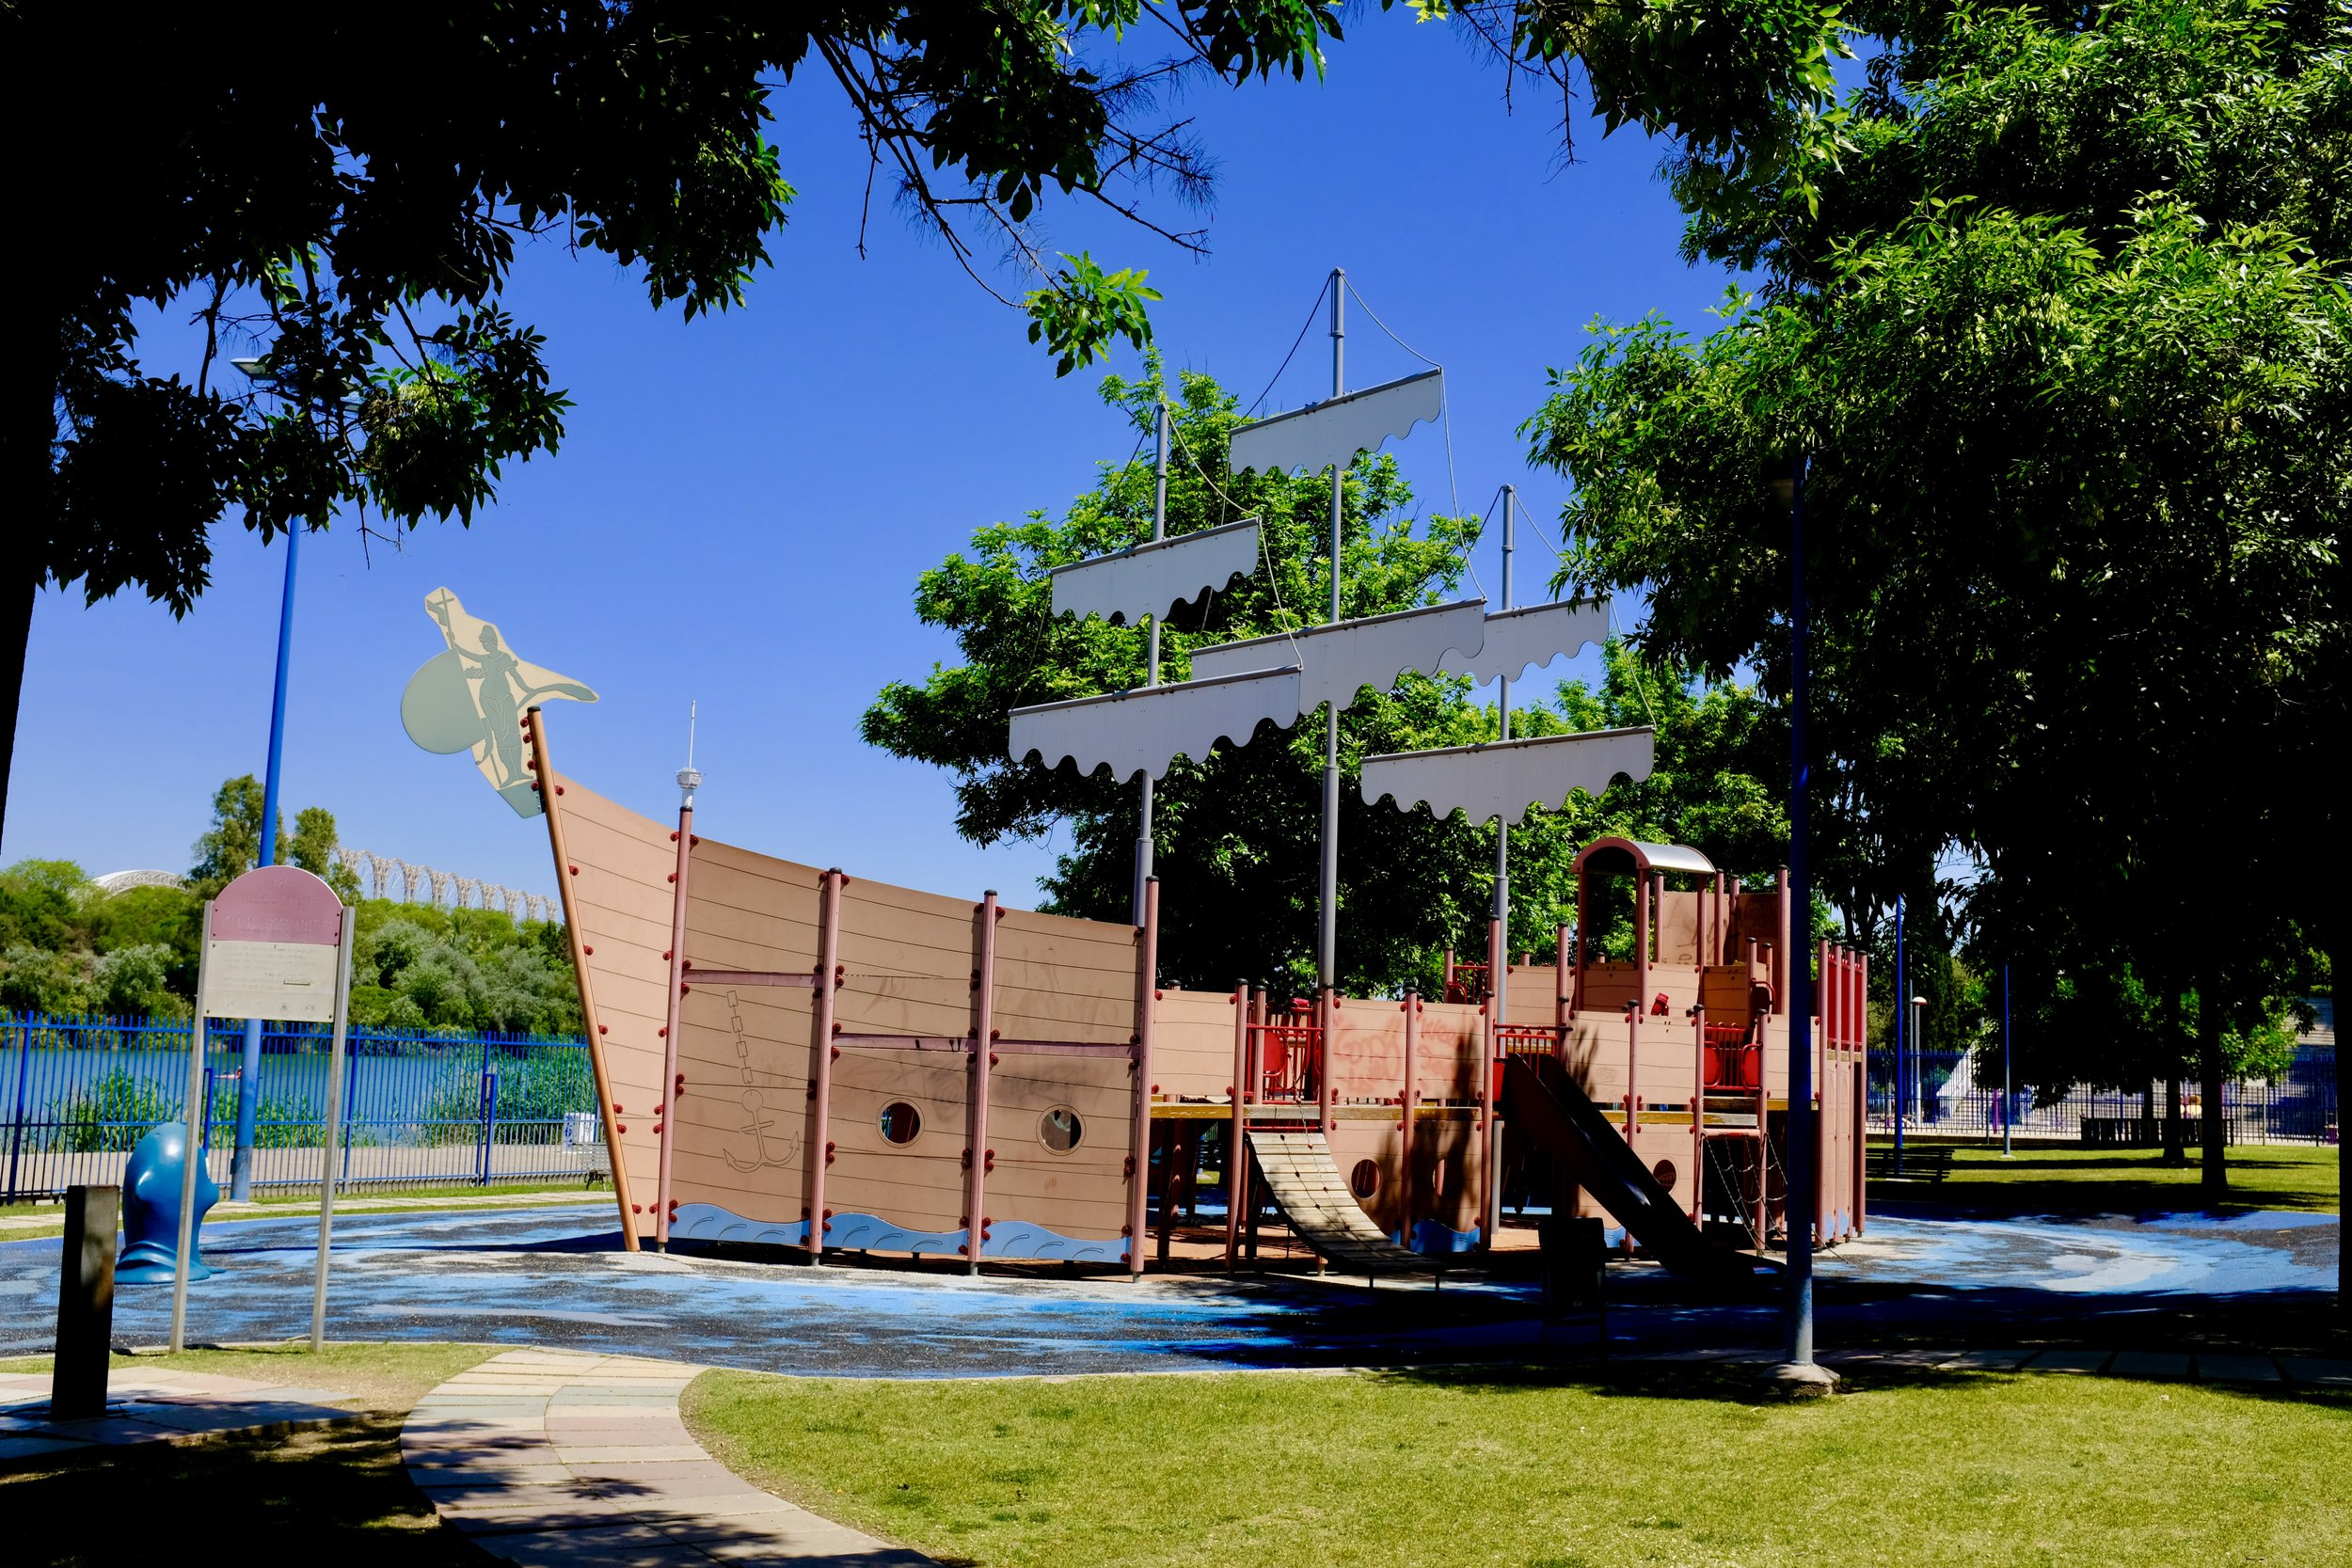 Playground Pirate Boat_City Nibbler_Seville